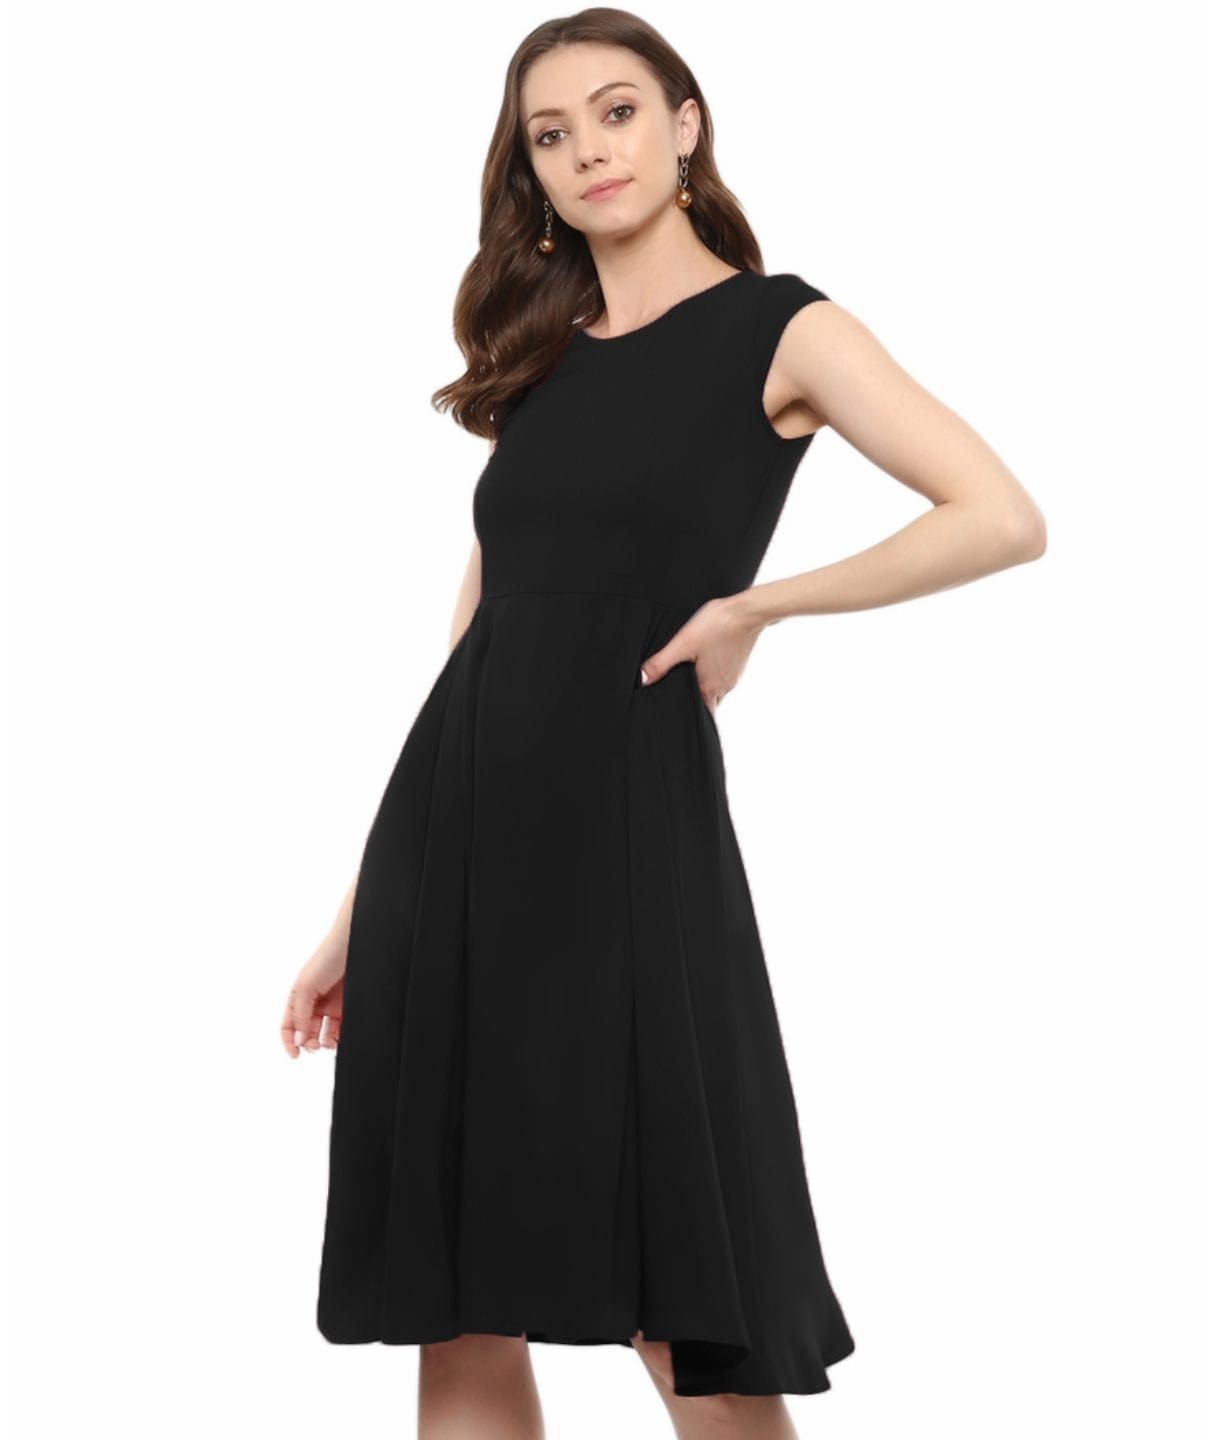 Black Solid Cap Sleeves Maternity Dress